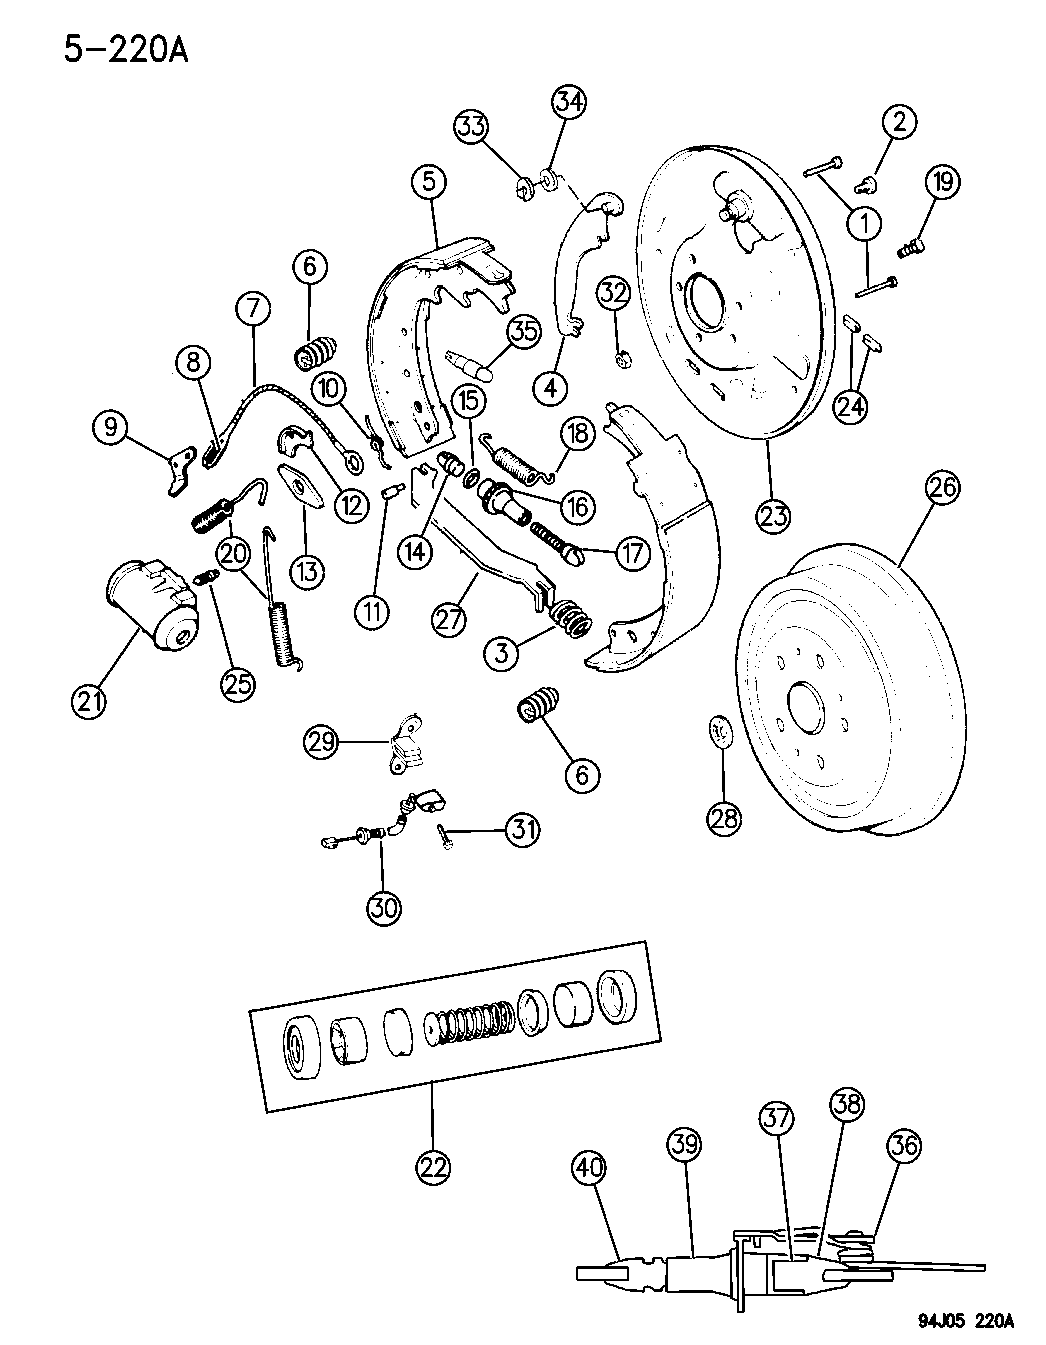 1996 Jeep Grand Cherokee Rear Drum Brakes Mopar Parts Giant Brake Diagram P